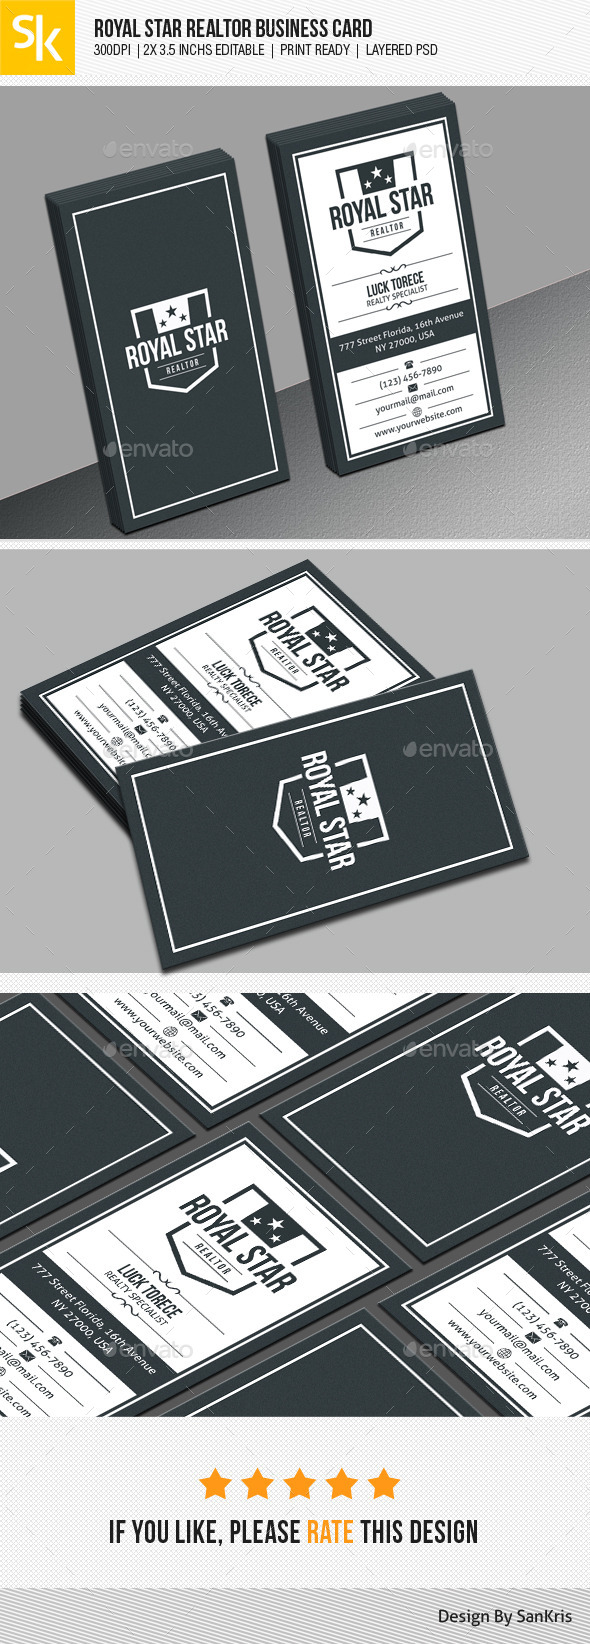 GraphicRiver Royal Star Realtor Business Card 11078128